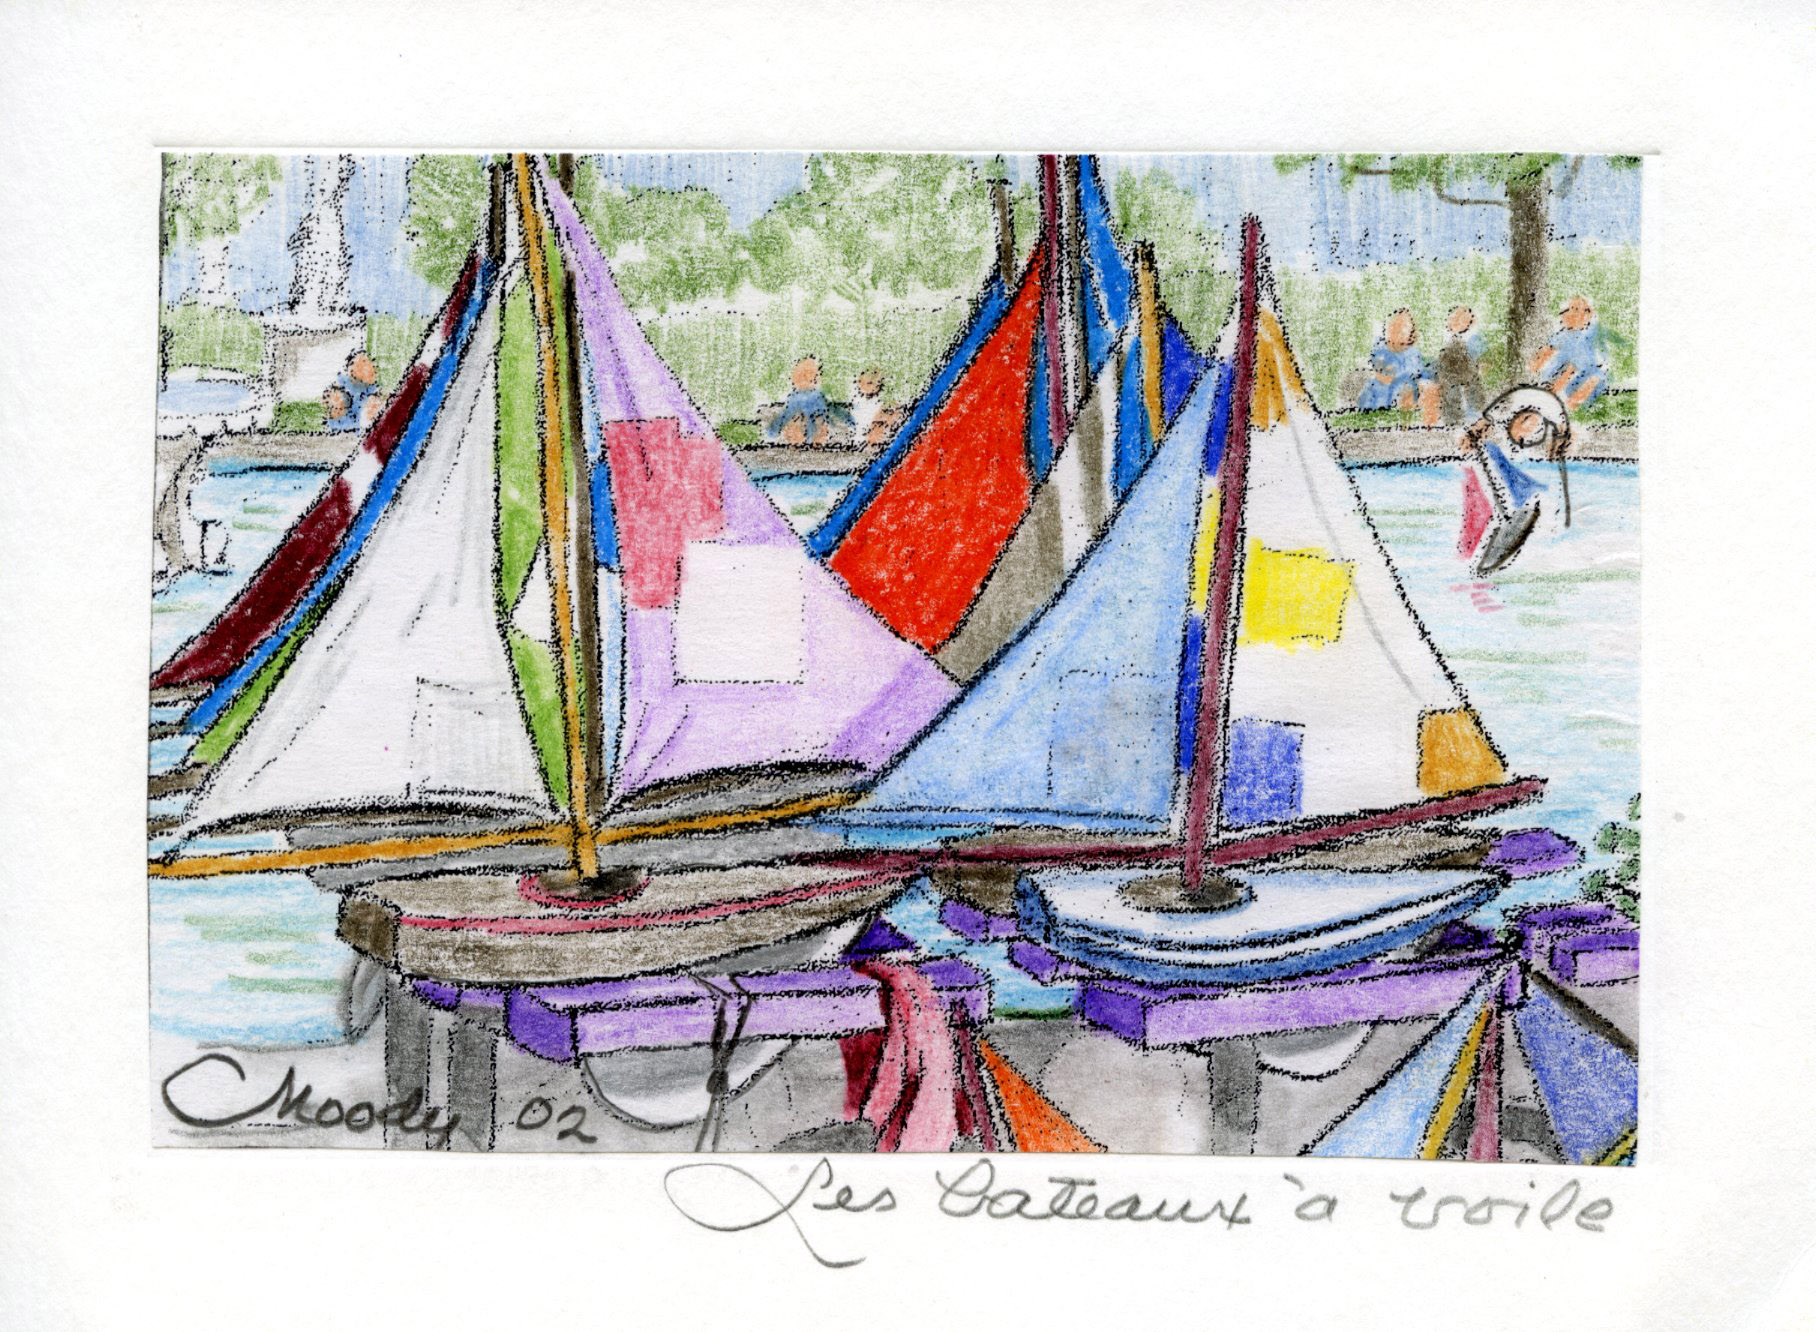 sketch of toy sailboats